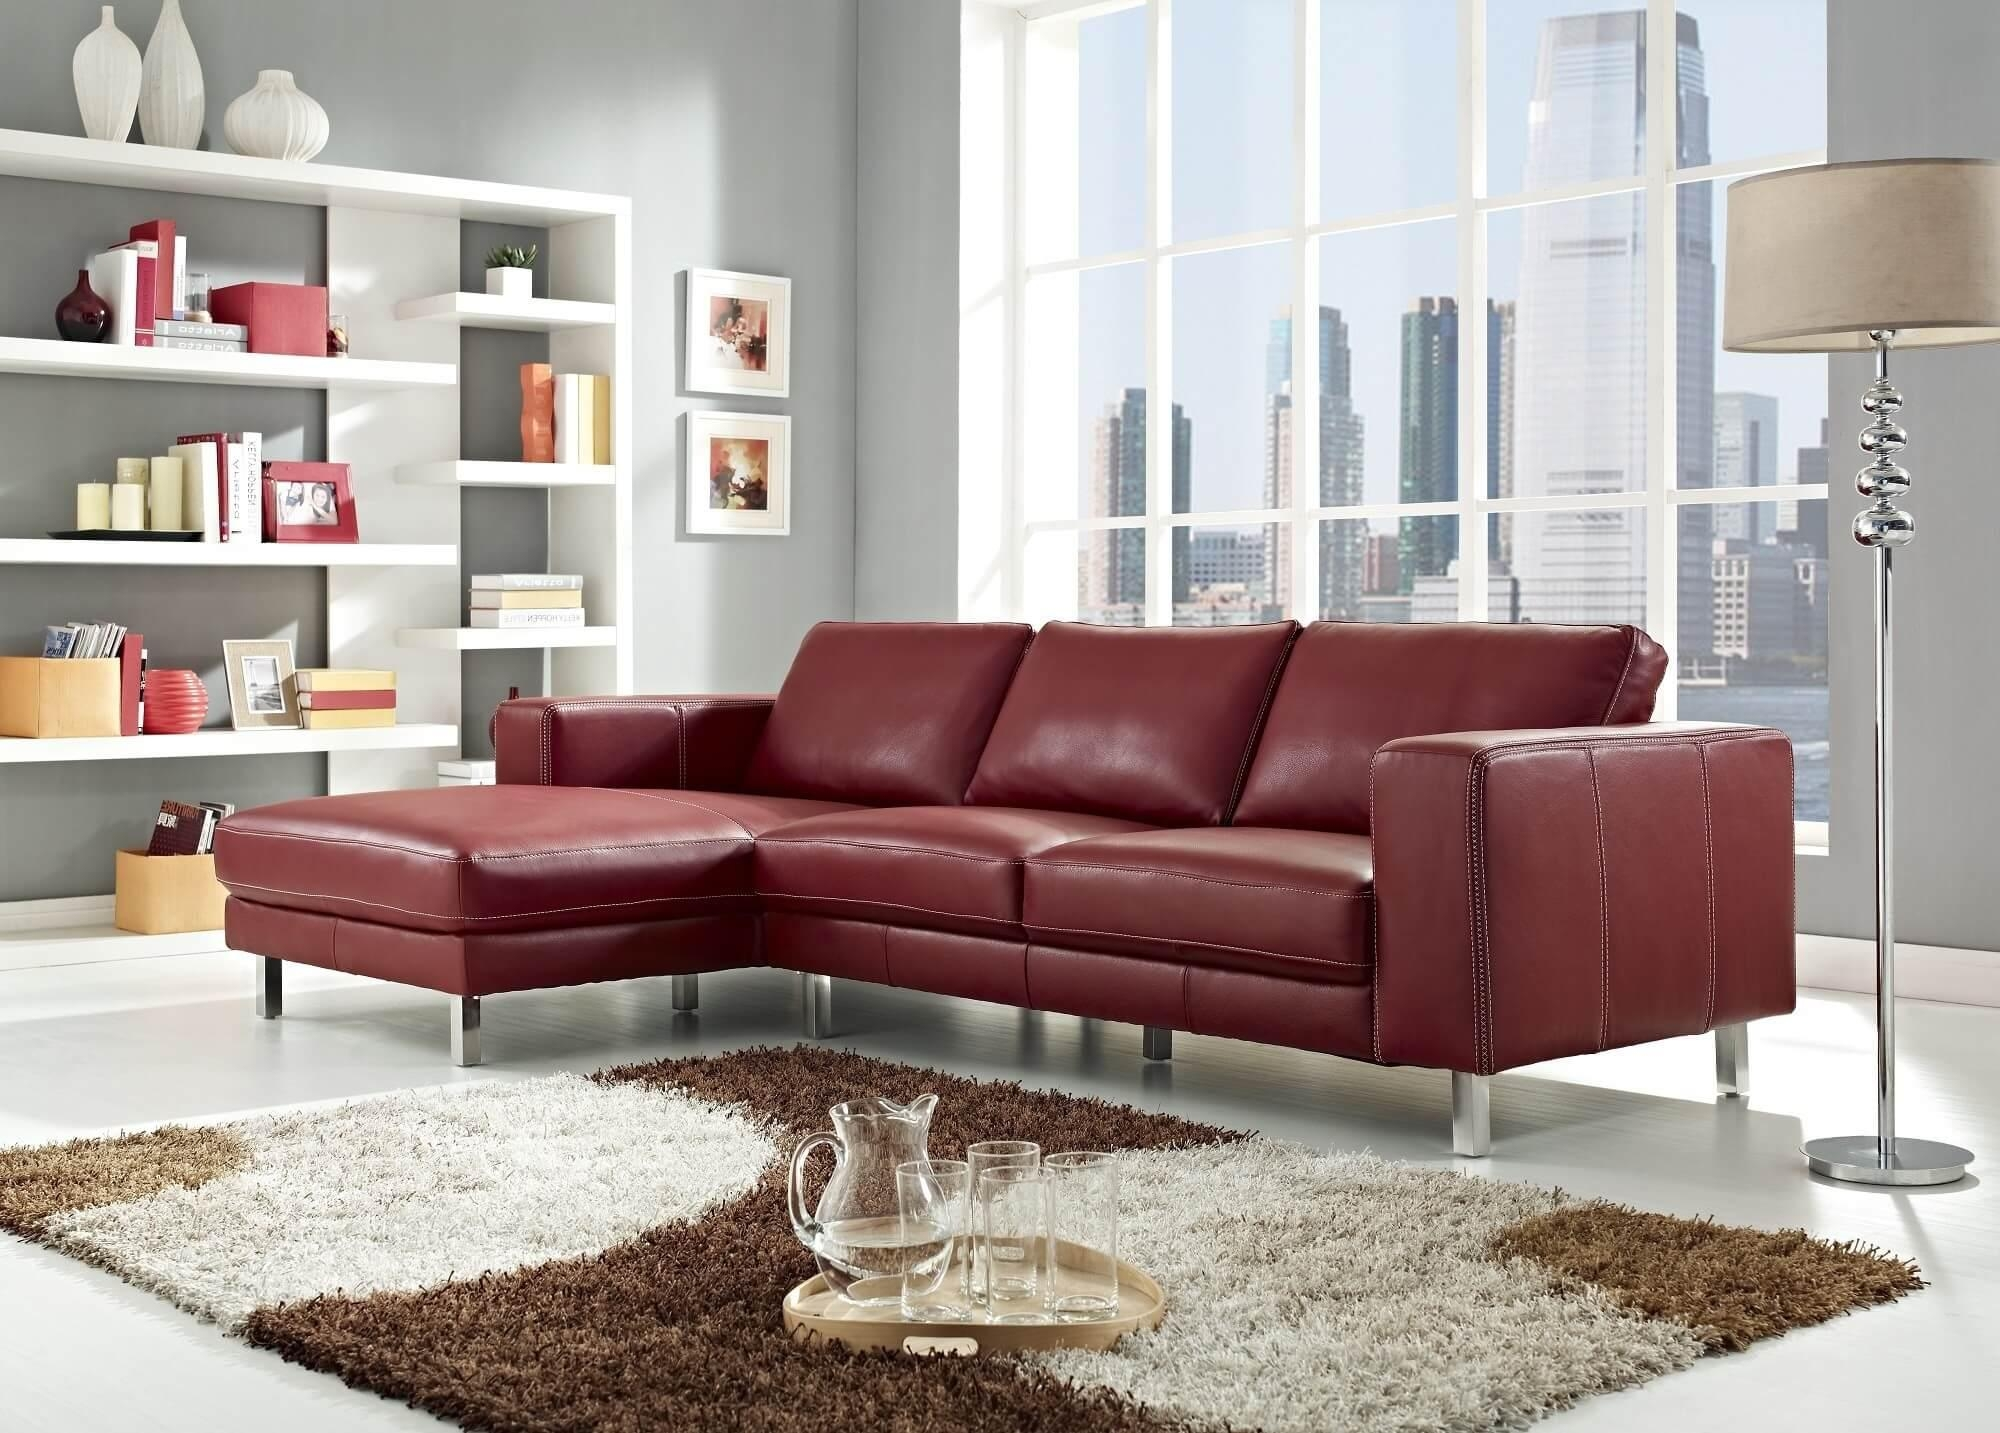 Red Leather Sofa Living Room Ideas – Modern House Regarding Dark Red Leather Couches (Image 15 of 20)